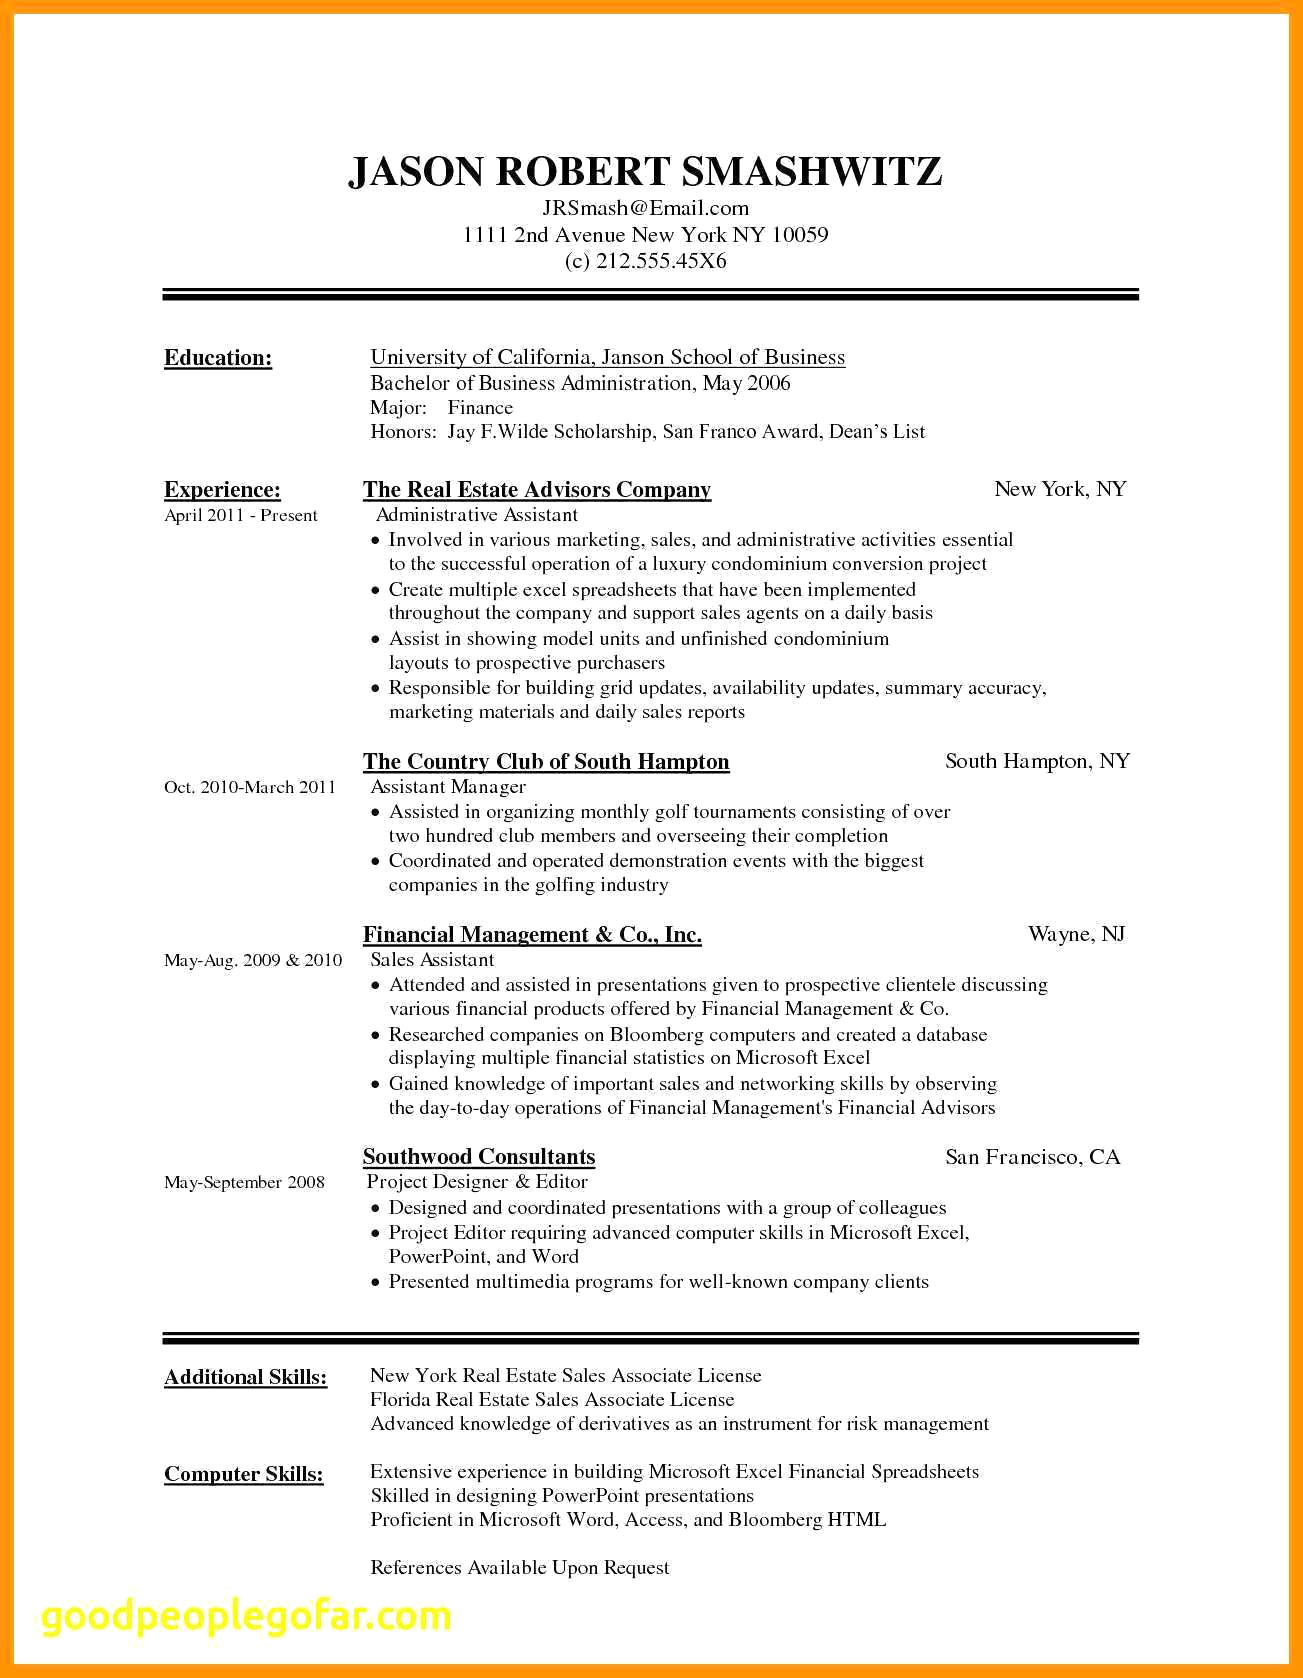 Free Downloadable Resume Templates for Word - 56 Design Download Resume Templates Word